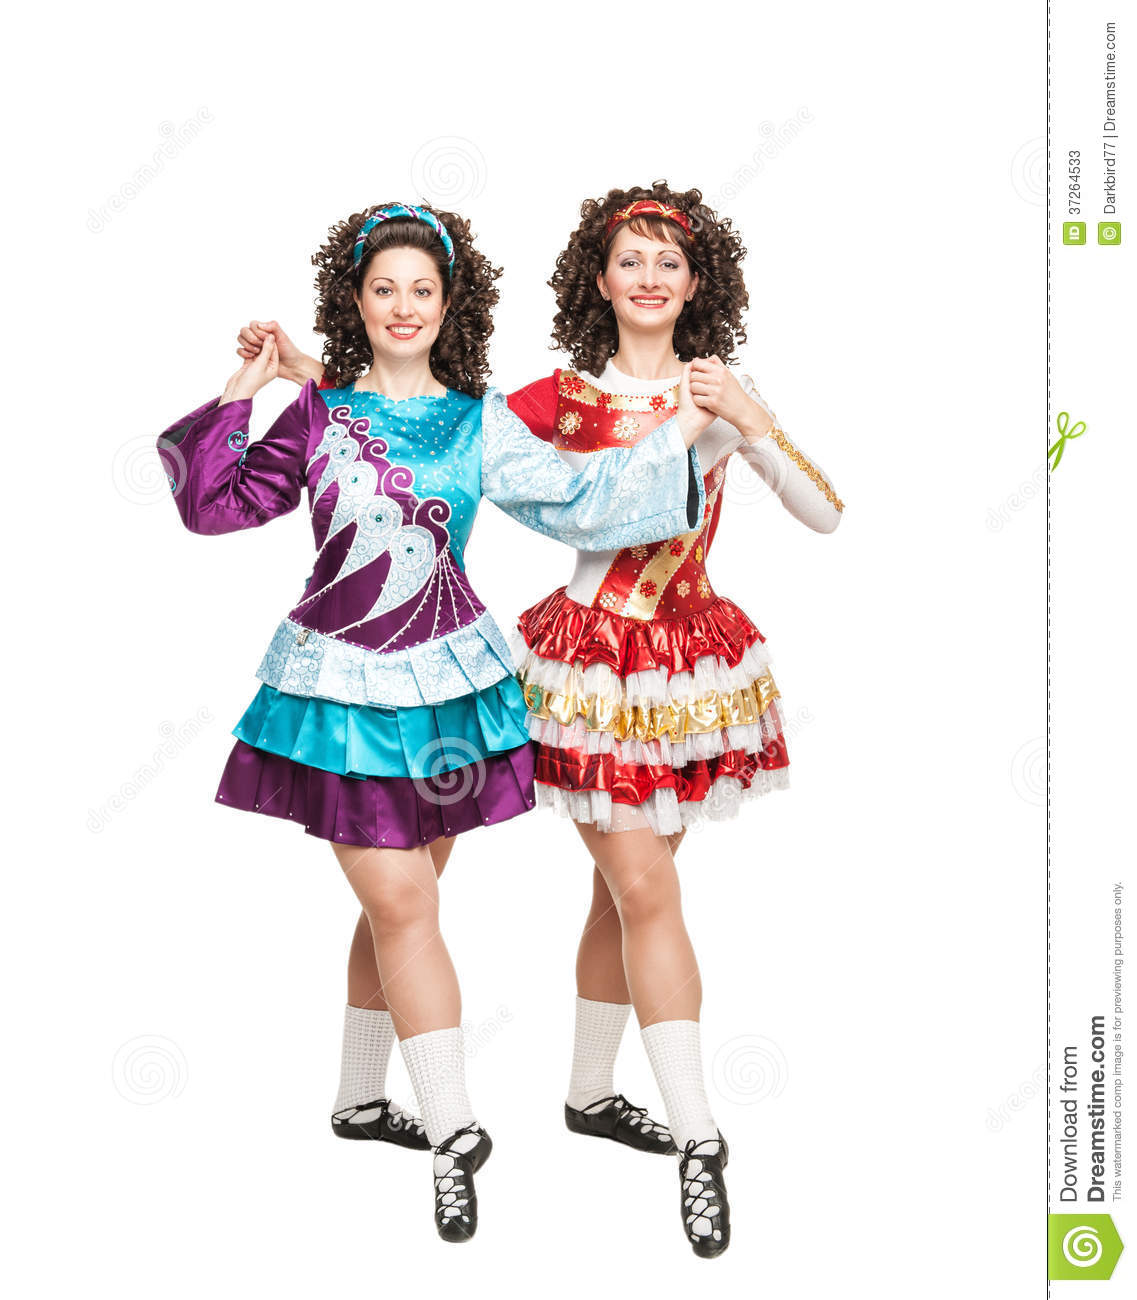 Two young women in Irish dance dresses and wigs posing isolated f48a10de82